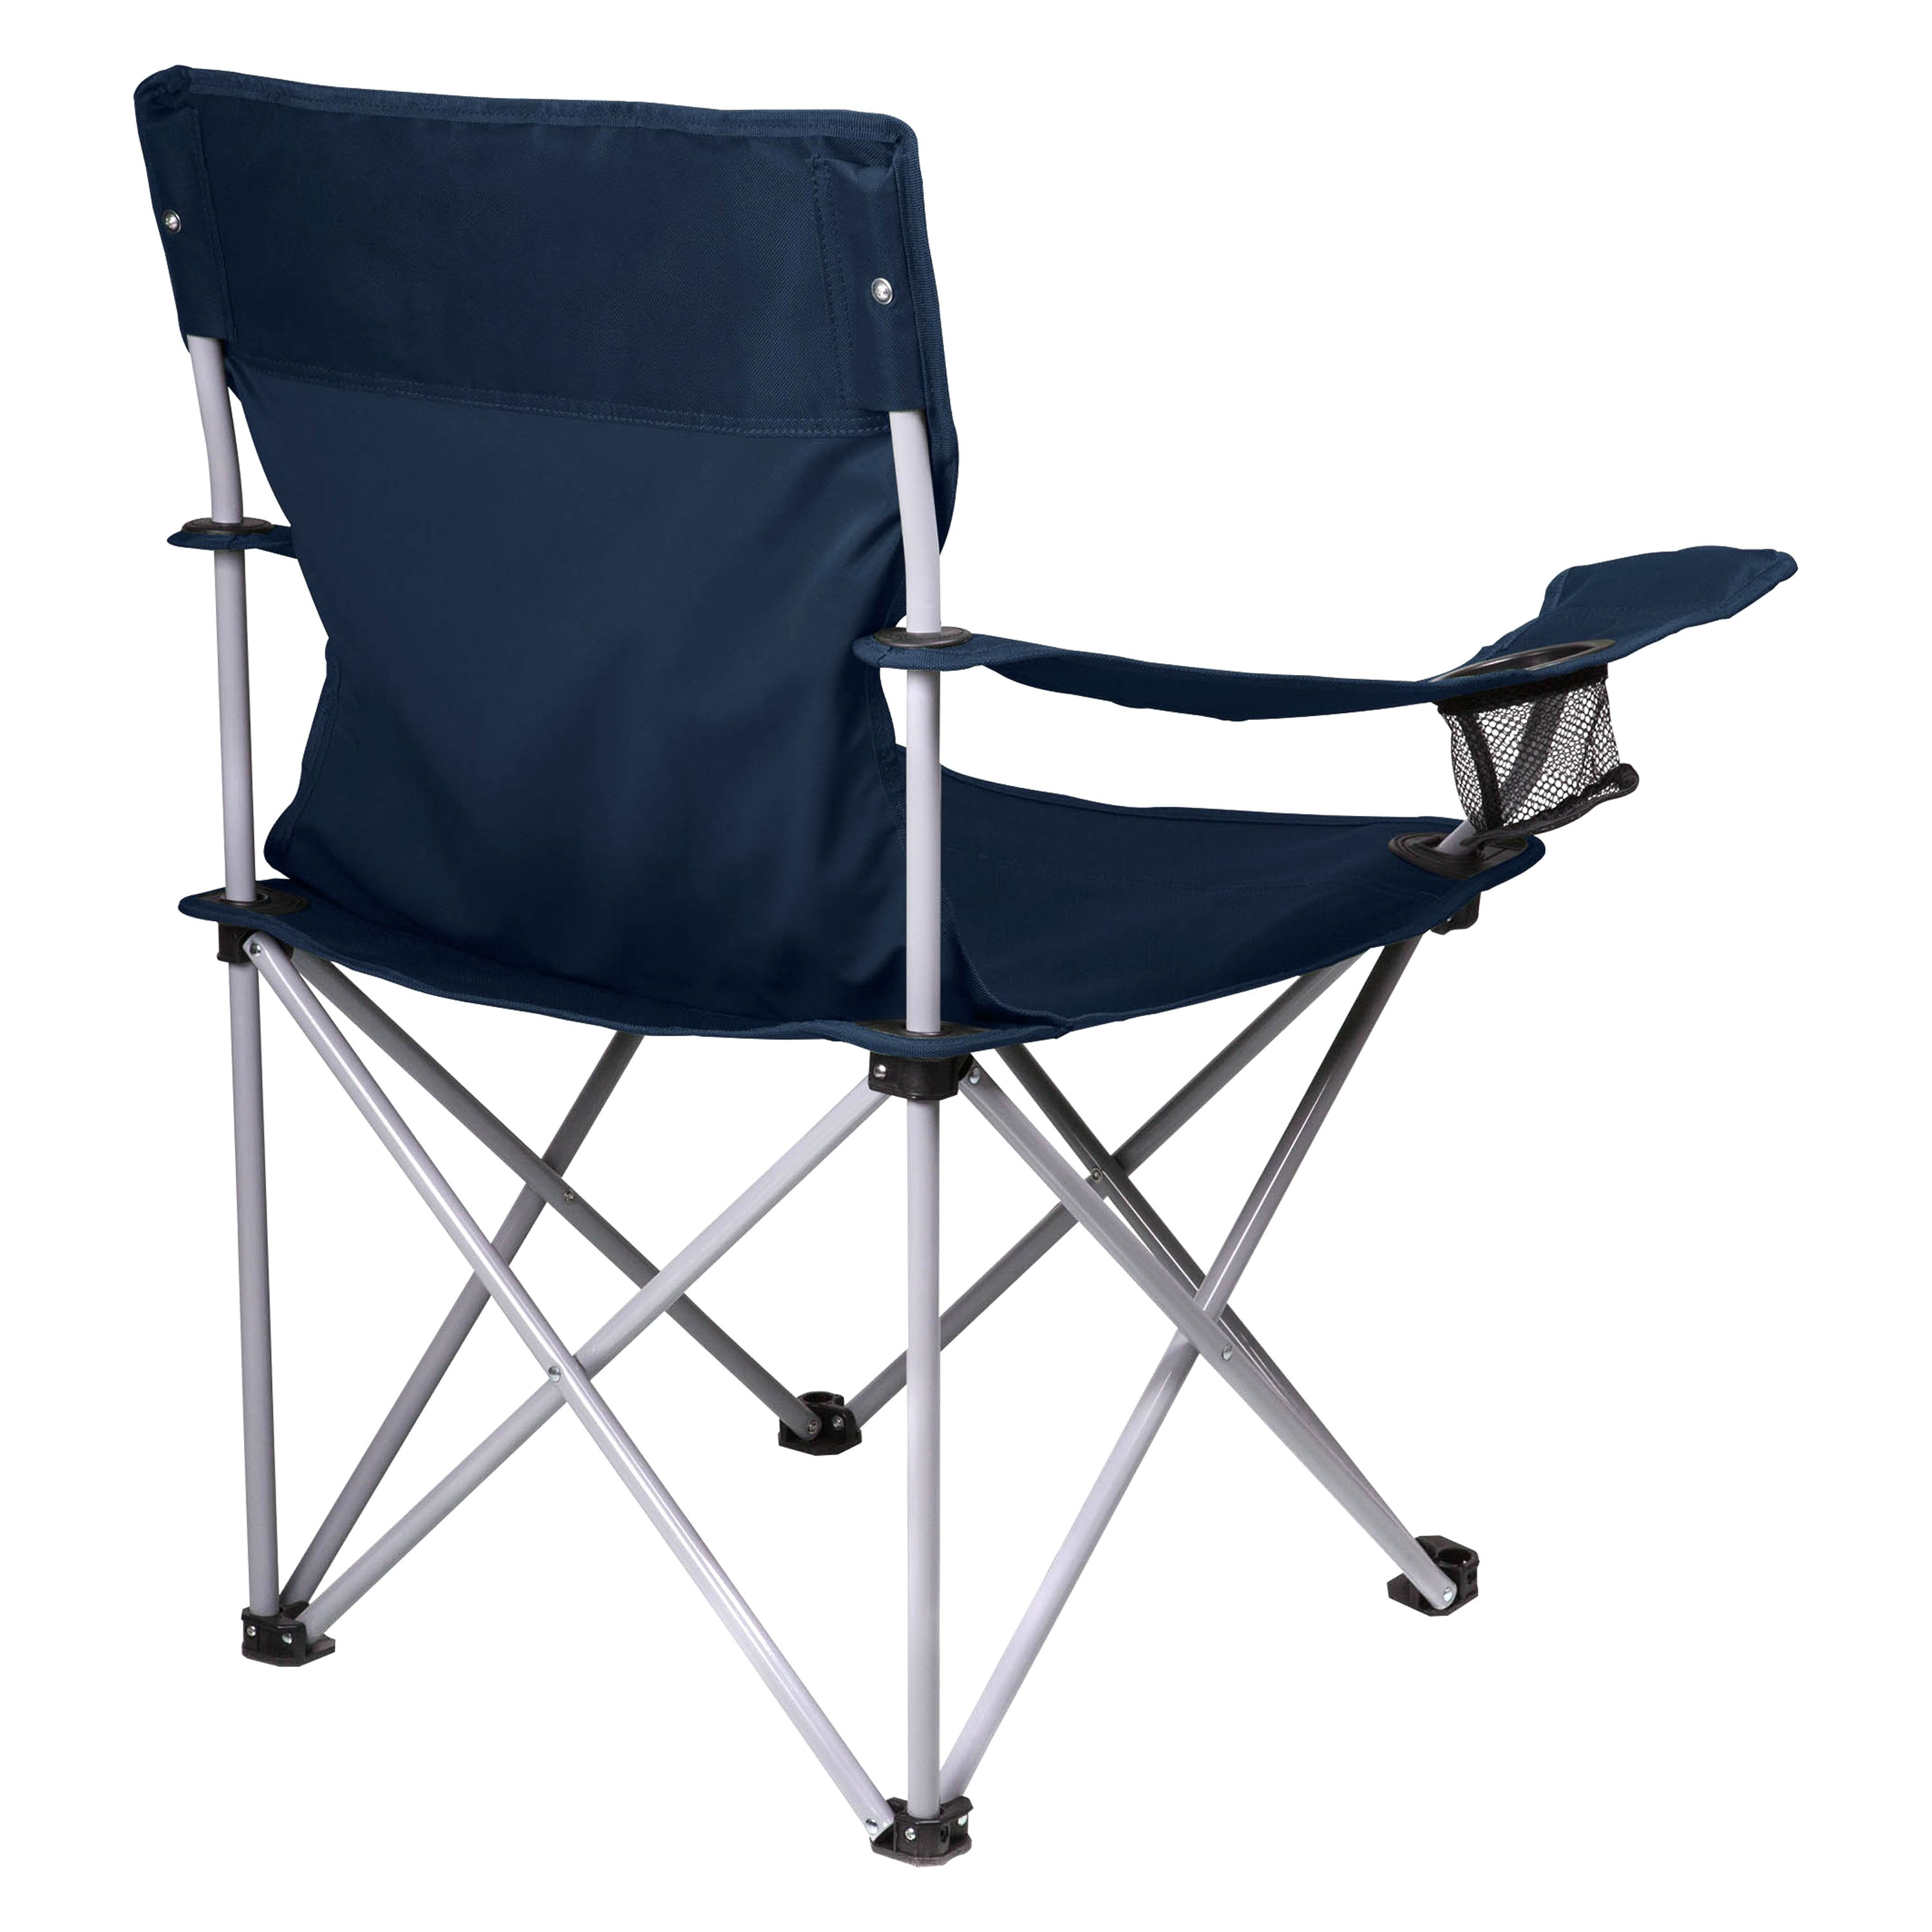 picnic time chair parts steel india 804 00 138 000 ptz navy camp